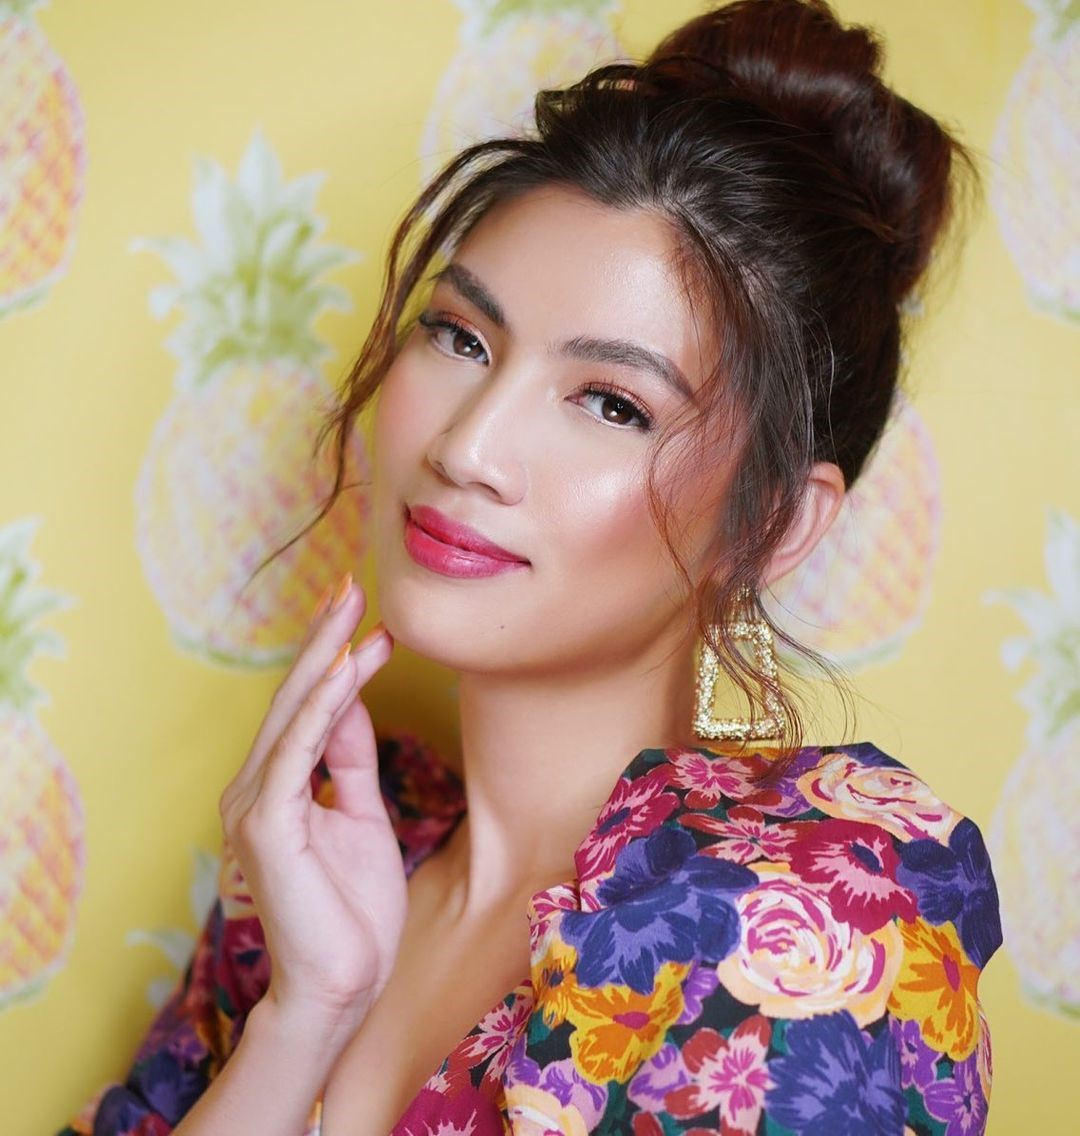 Catching up with Nicole Cordoves' upgraded lifestyle at home